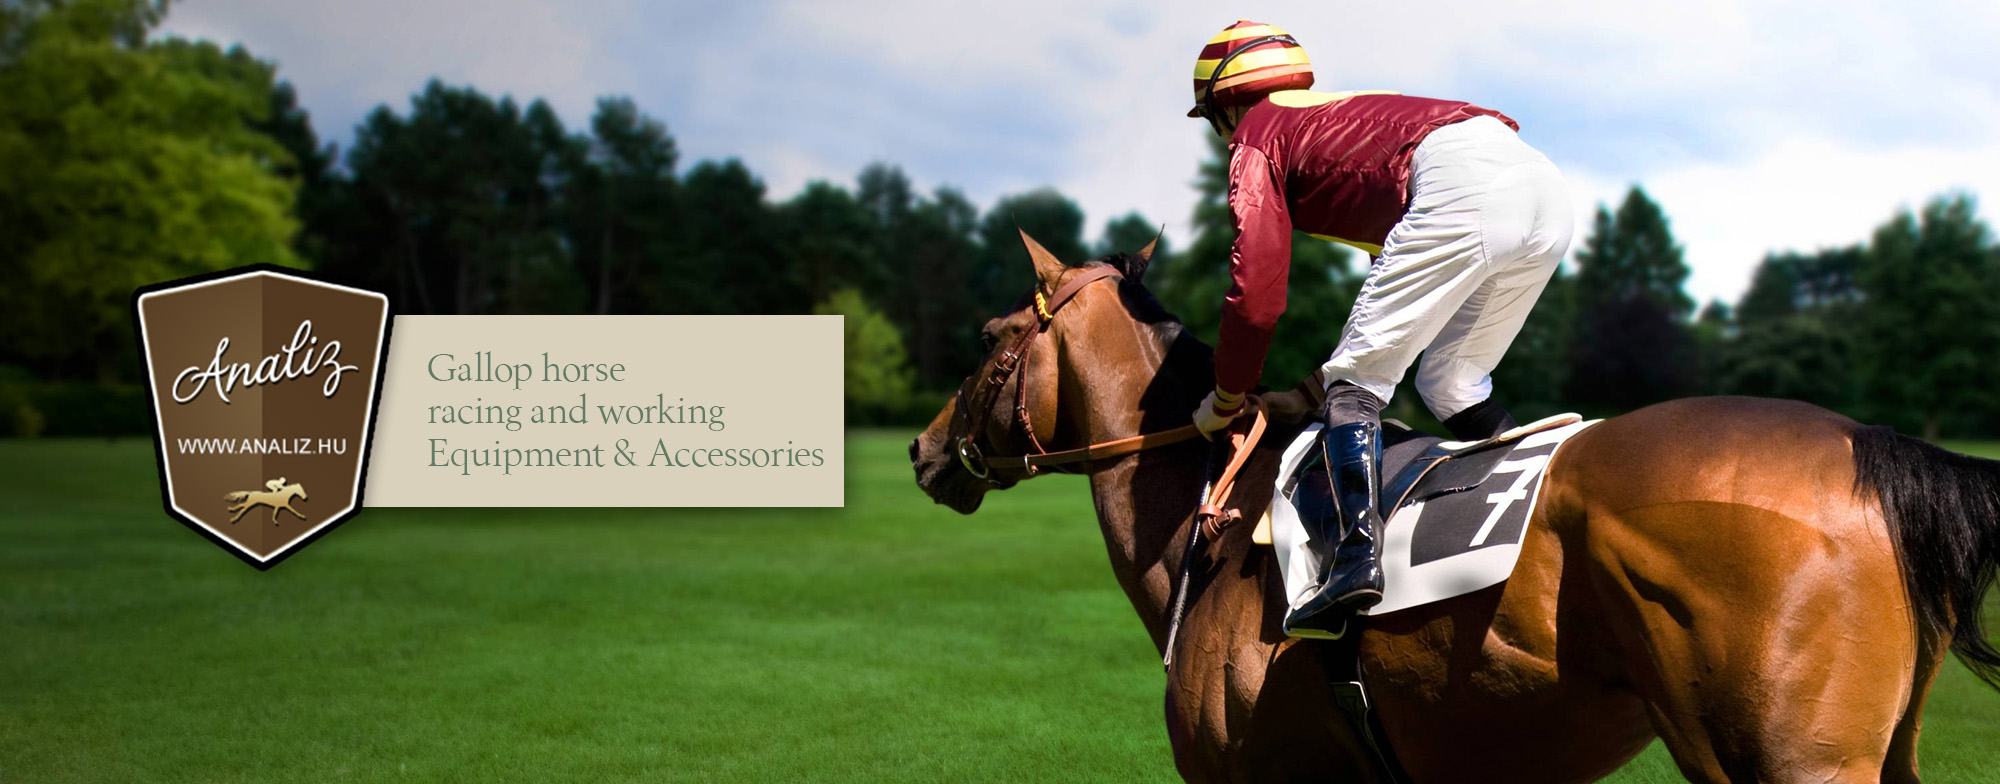 Gallop horse racing and working Equipment & Accessories